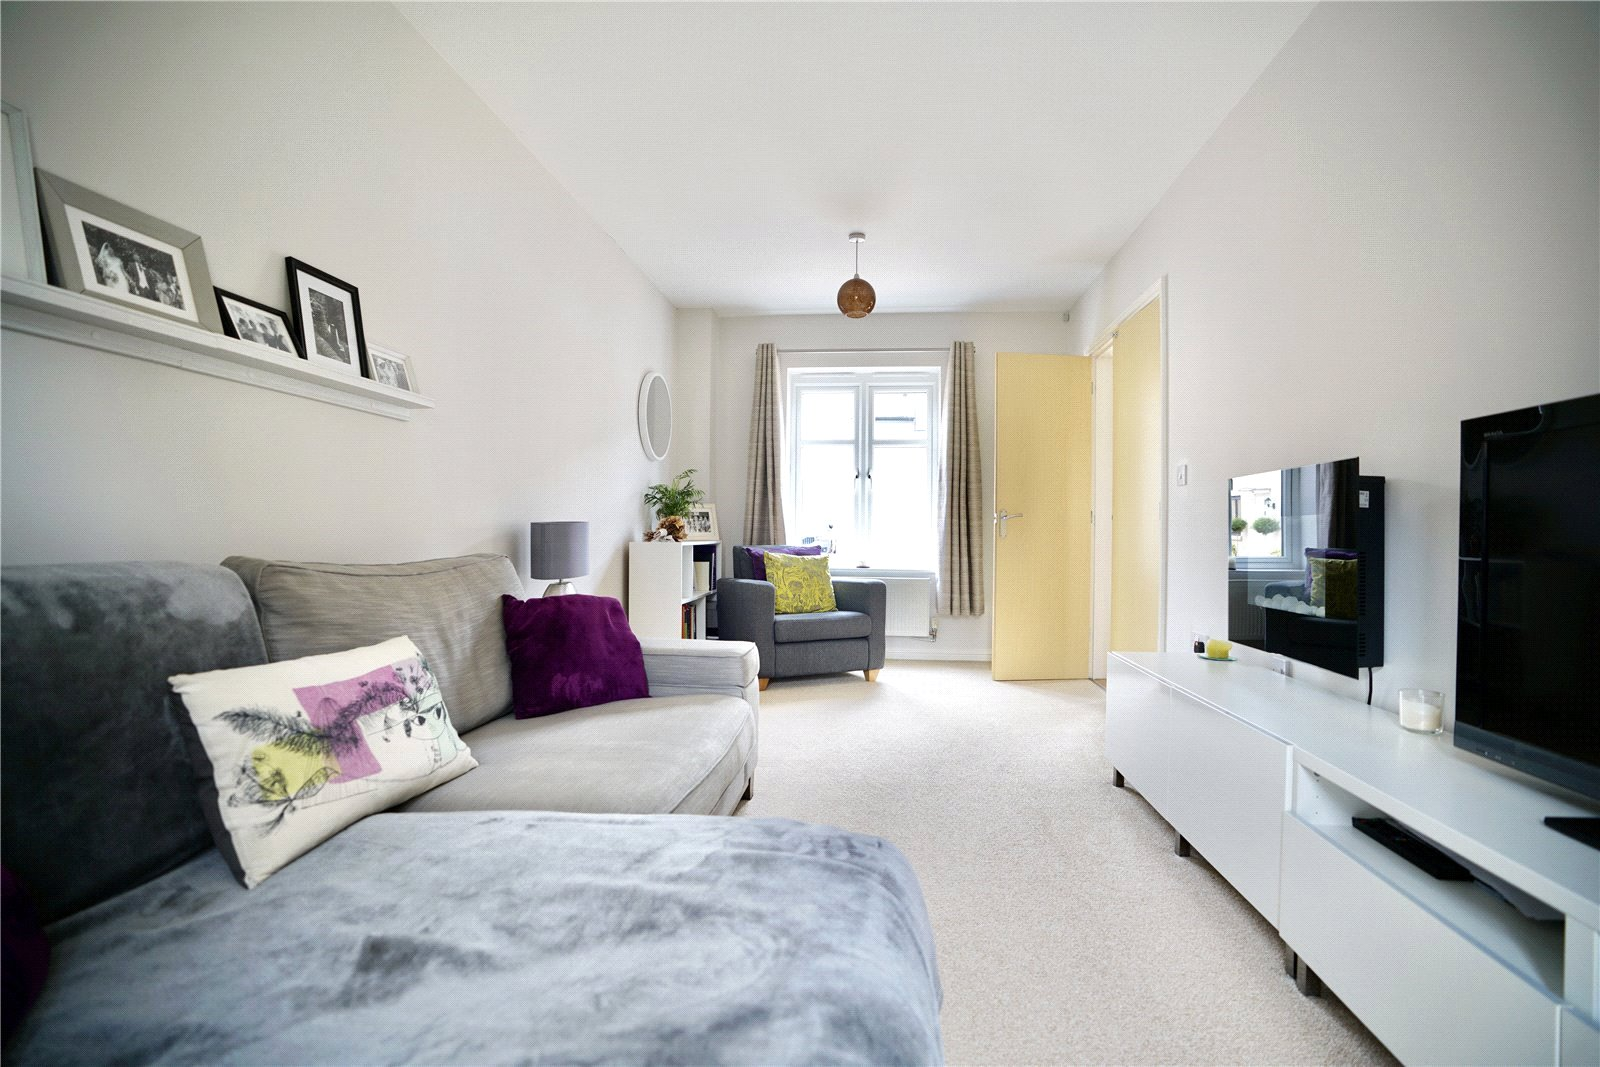 3 bed house for sale in St. Ives, PE27 5DL  - Property Image 5